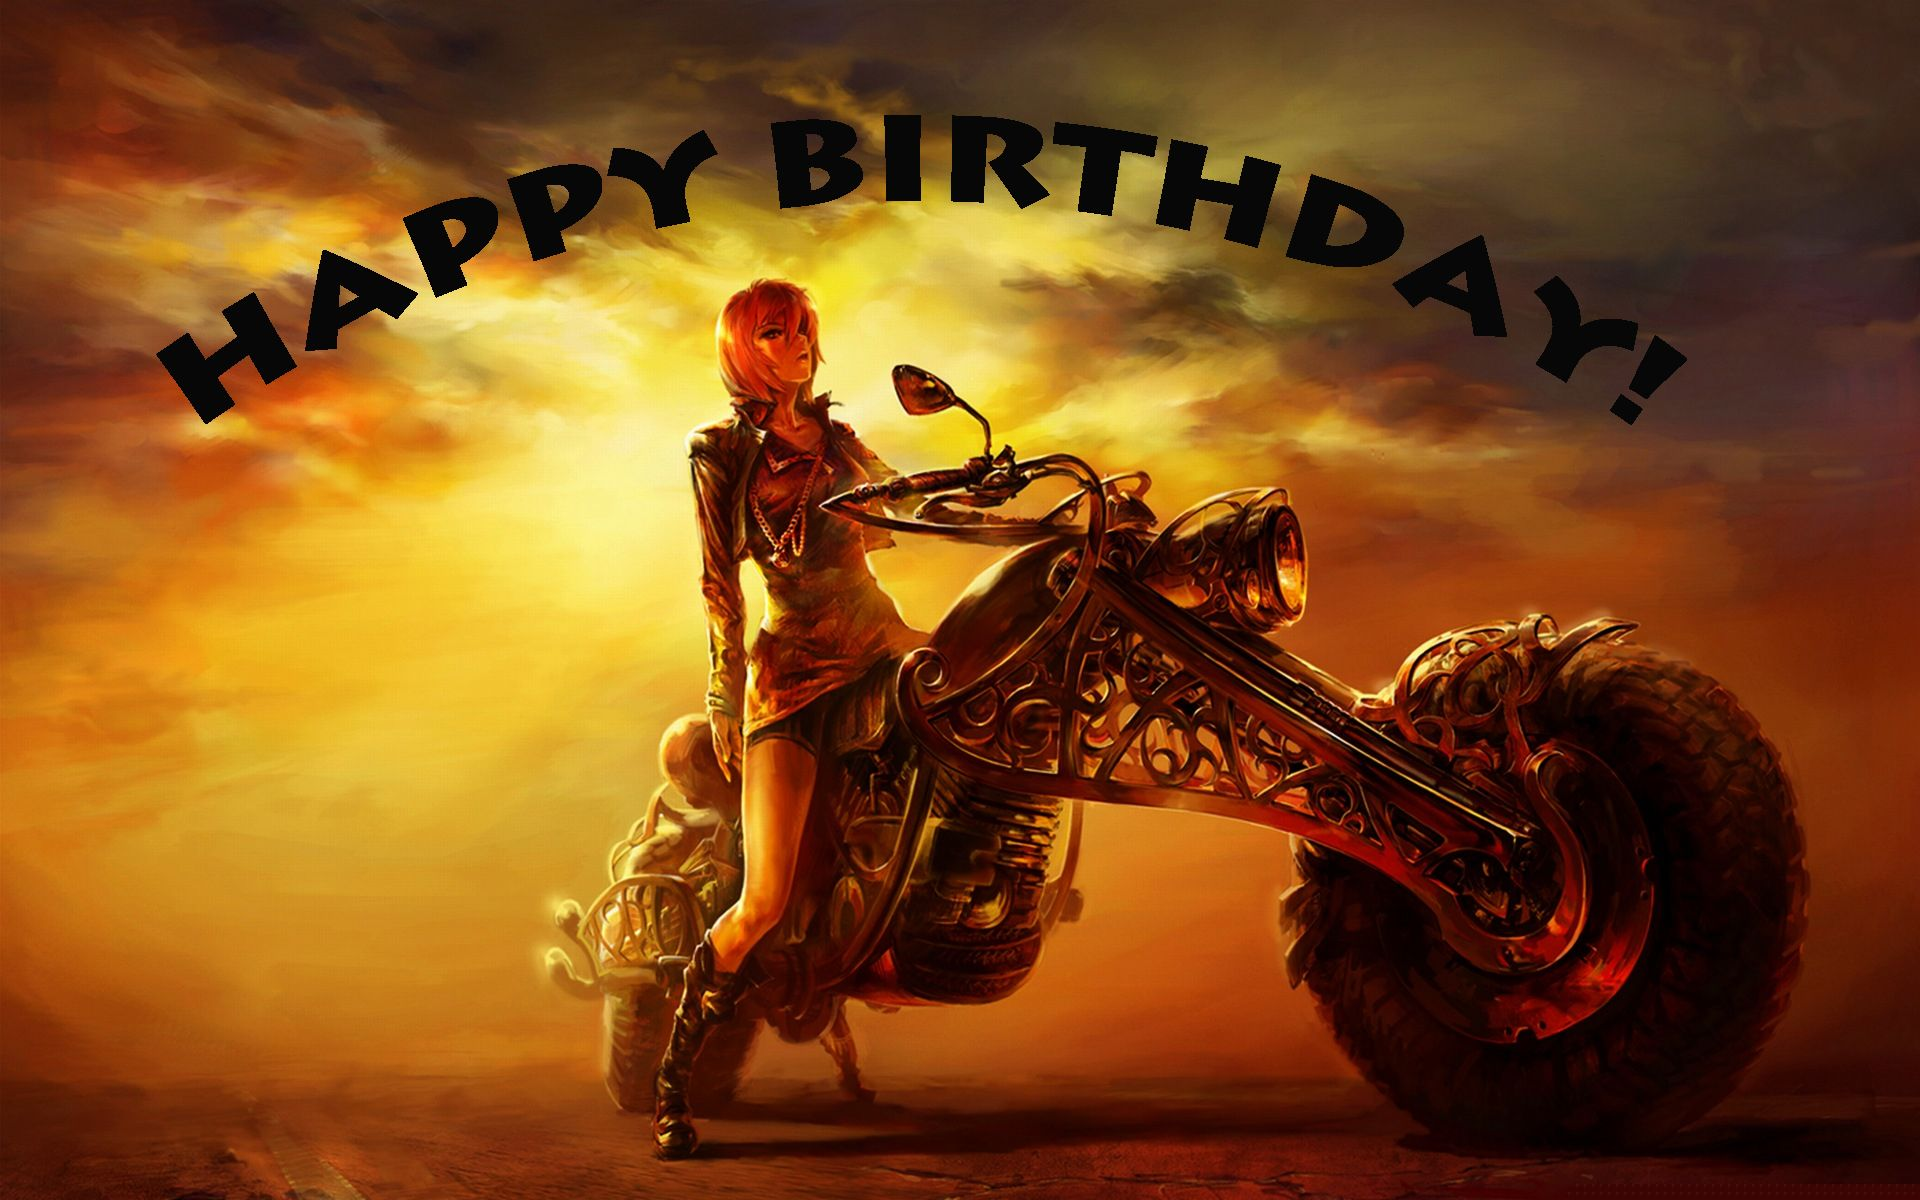 happy birthday biker ; 489b1382f6880b40a73c93fe92566cc3